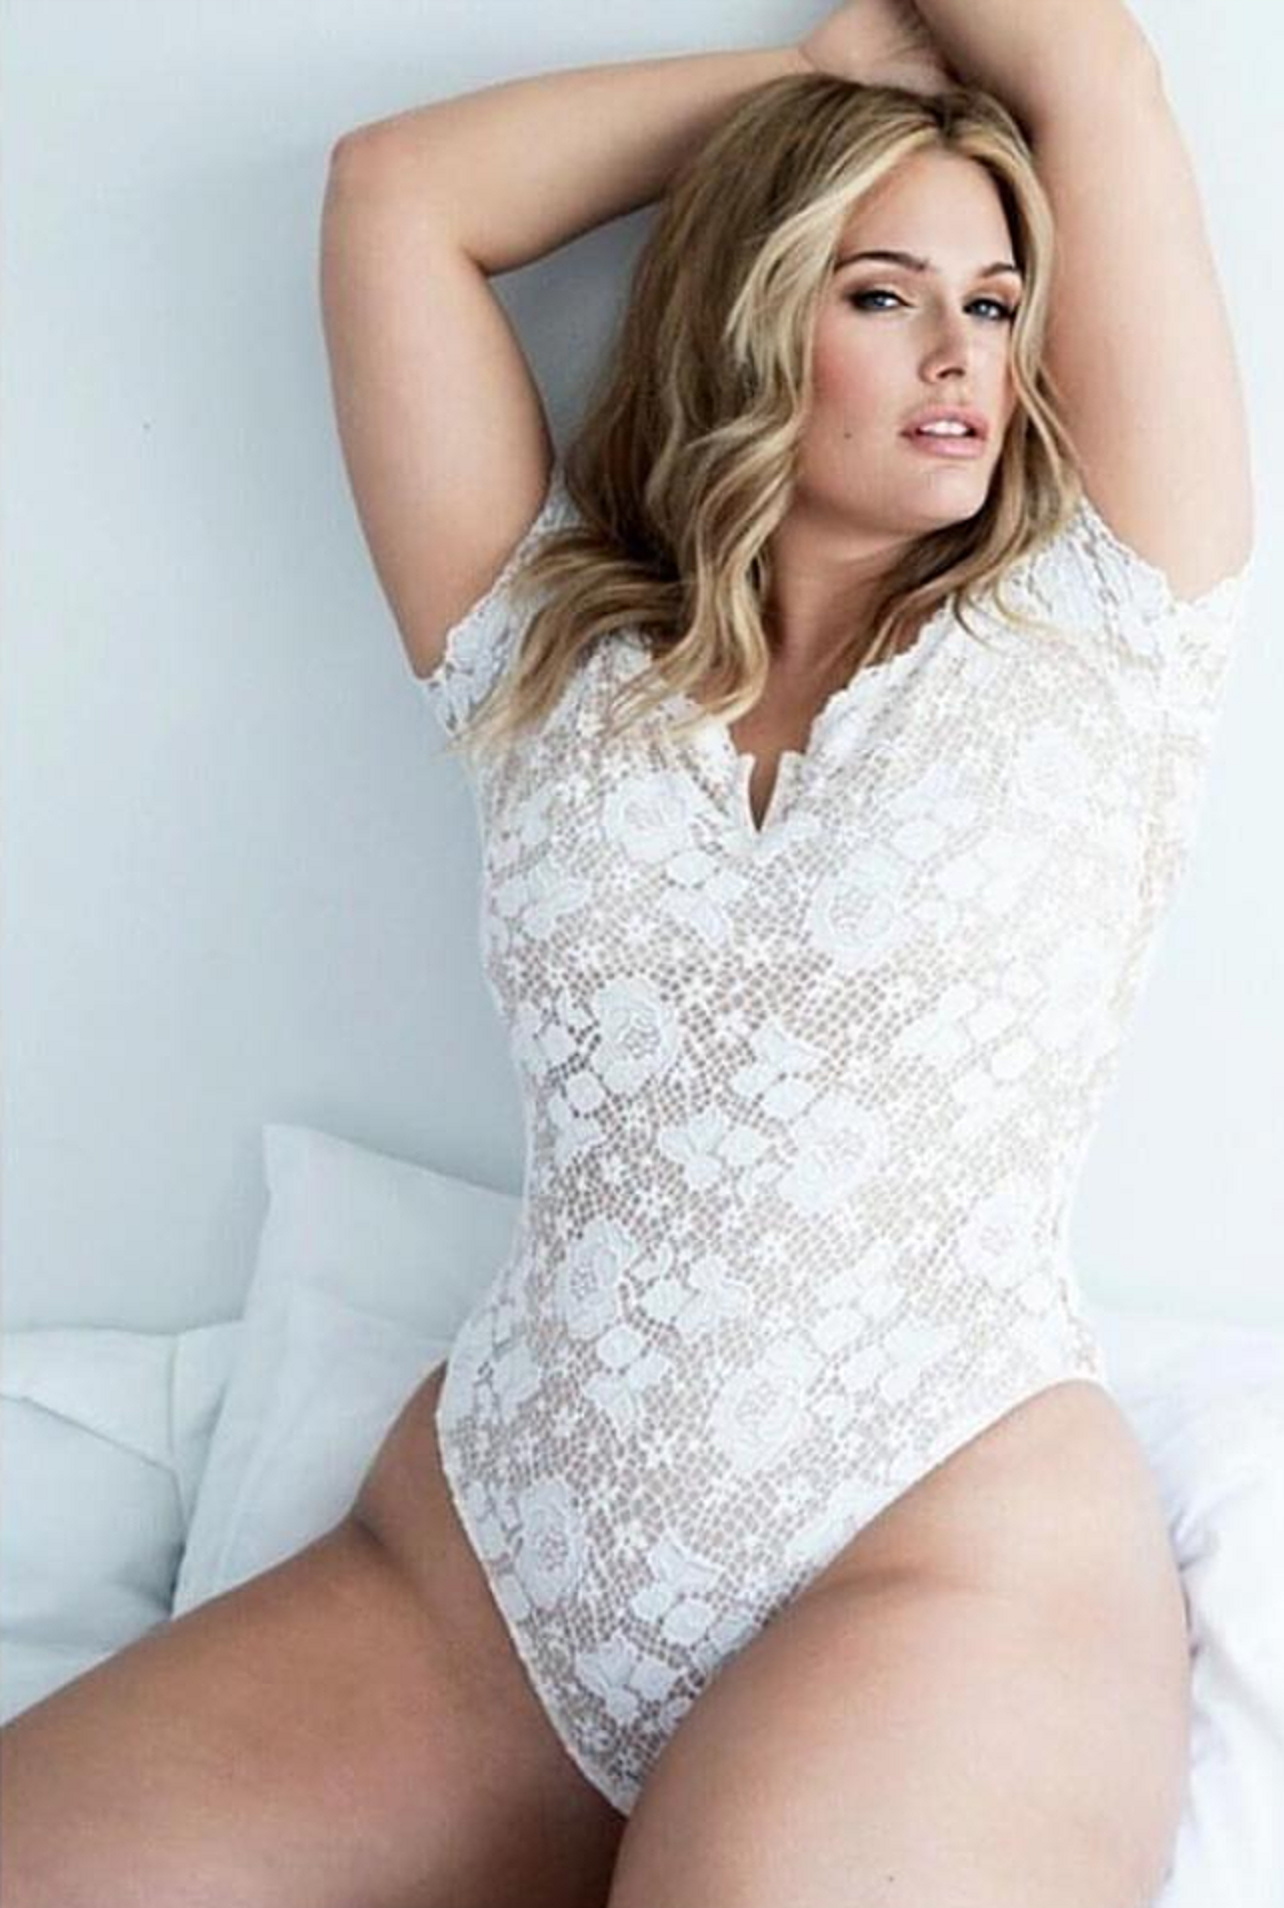 Boobs Laura Bach naked (16 photo), Topless, Paparazzi, Instagram, underwear 2017